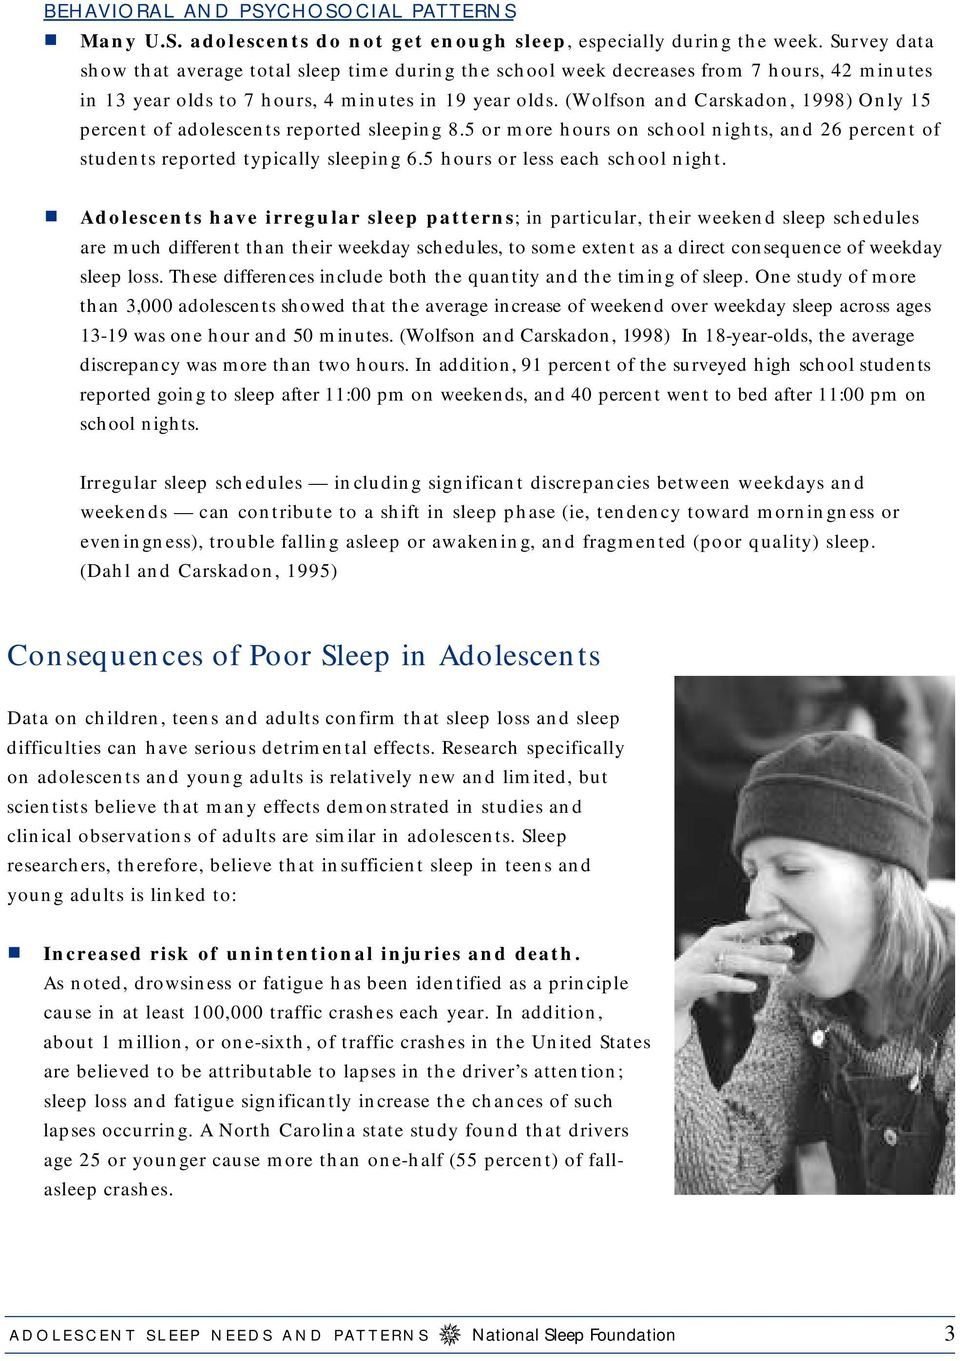 (Wolfson and Carskadon, 1998) Only 15 percent of adolescents reported sleeping 8.5 or more hours on school nights, and 26 percent of students reported typically sleeping 6.